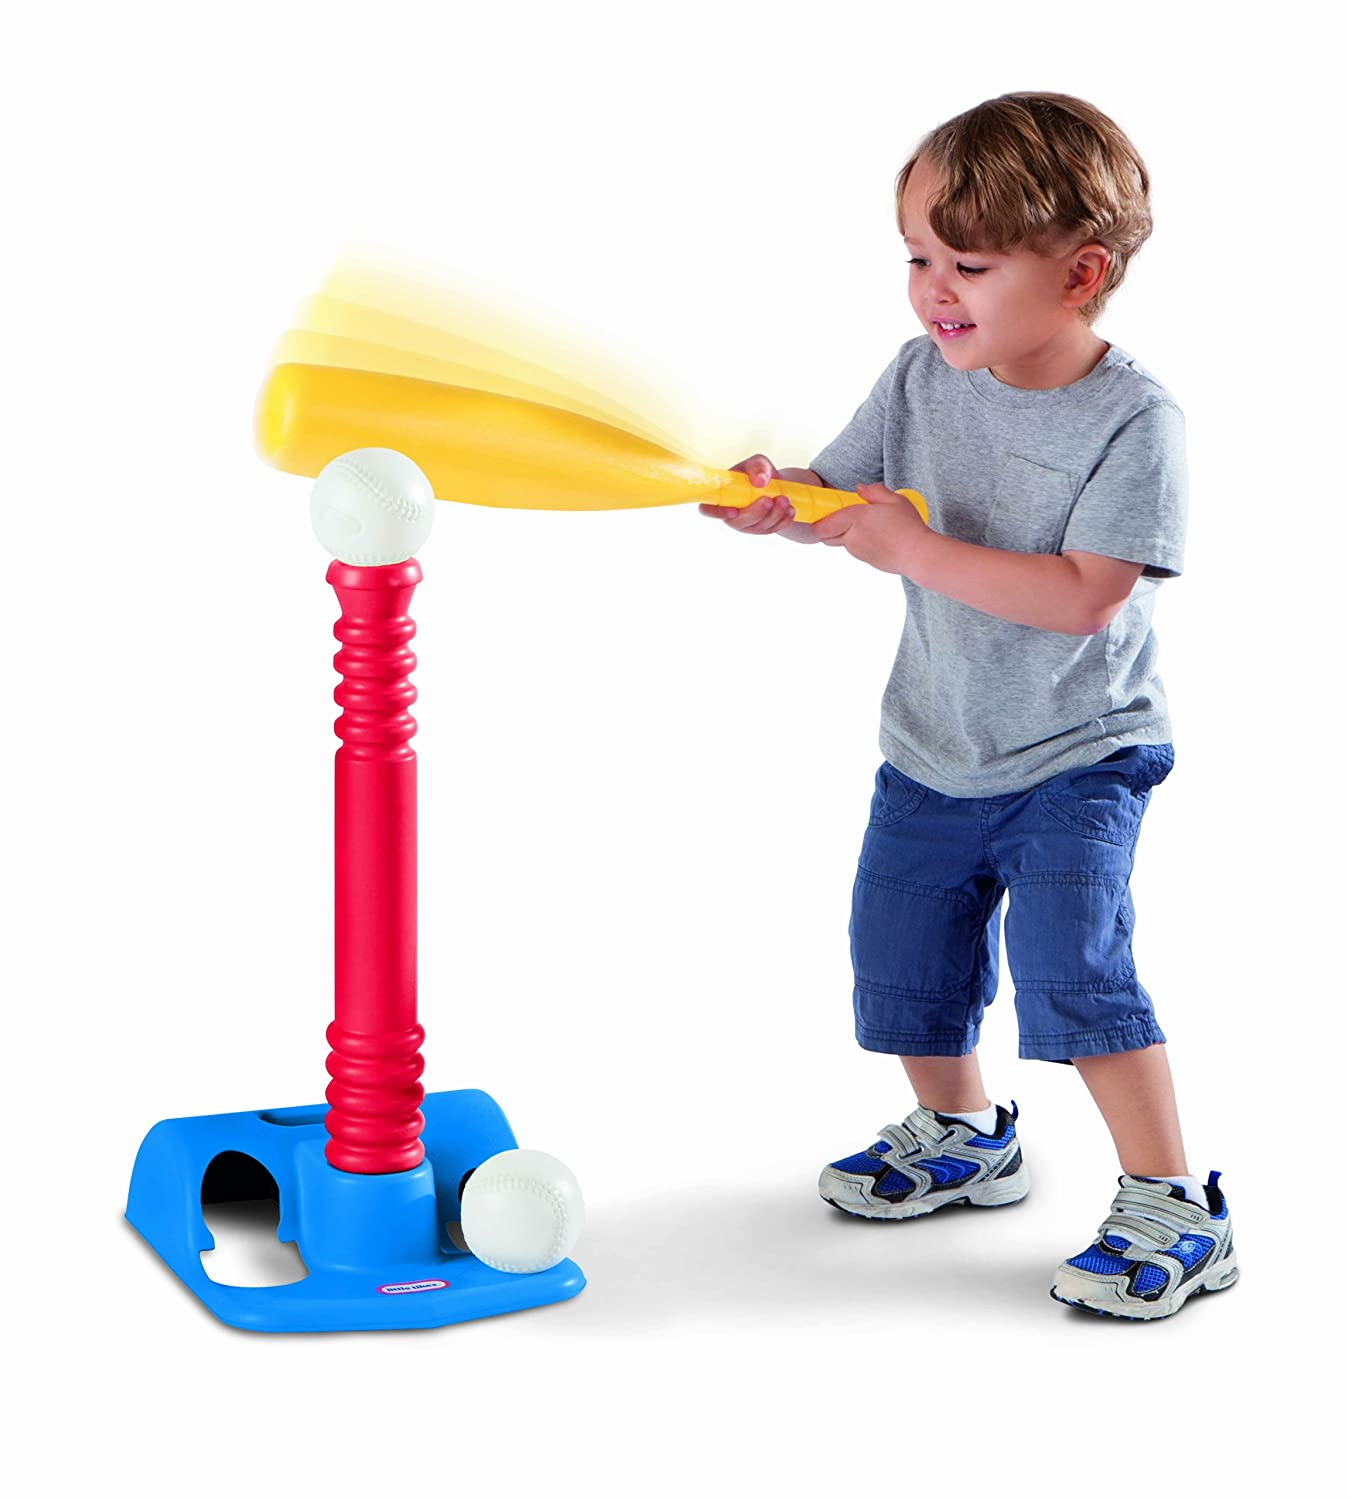 Toys For Toddler Boys 2 : Best toys for kids the sporty year